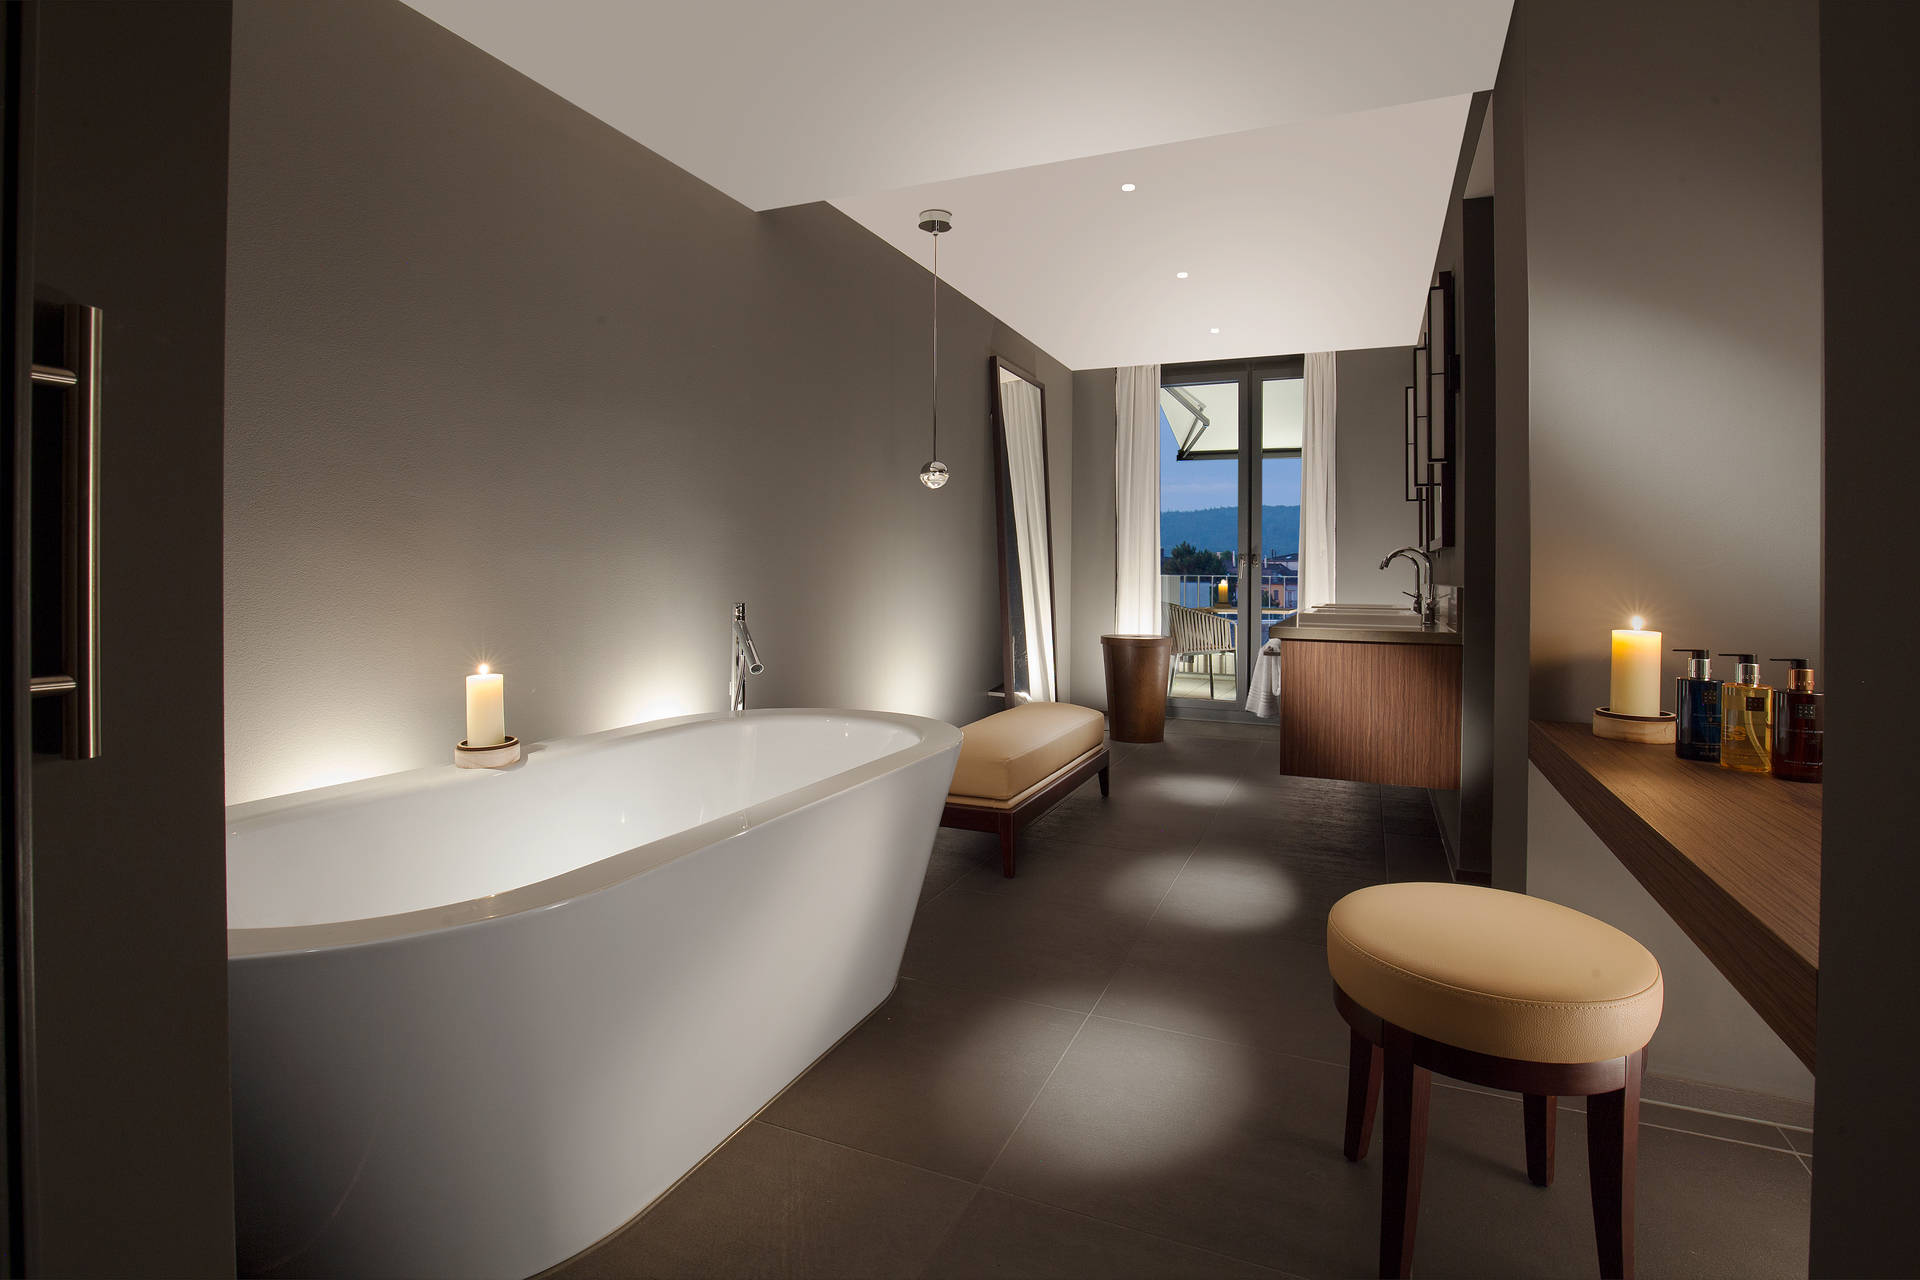 Bathroom in the Rooftop Suite with large bathtub and access to the roof terrace